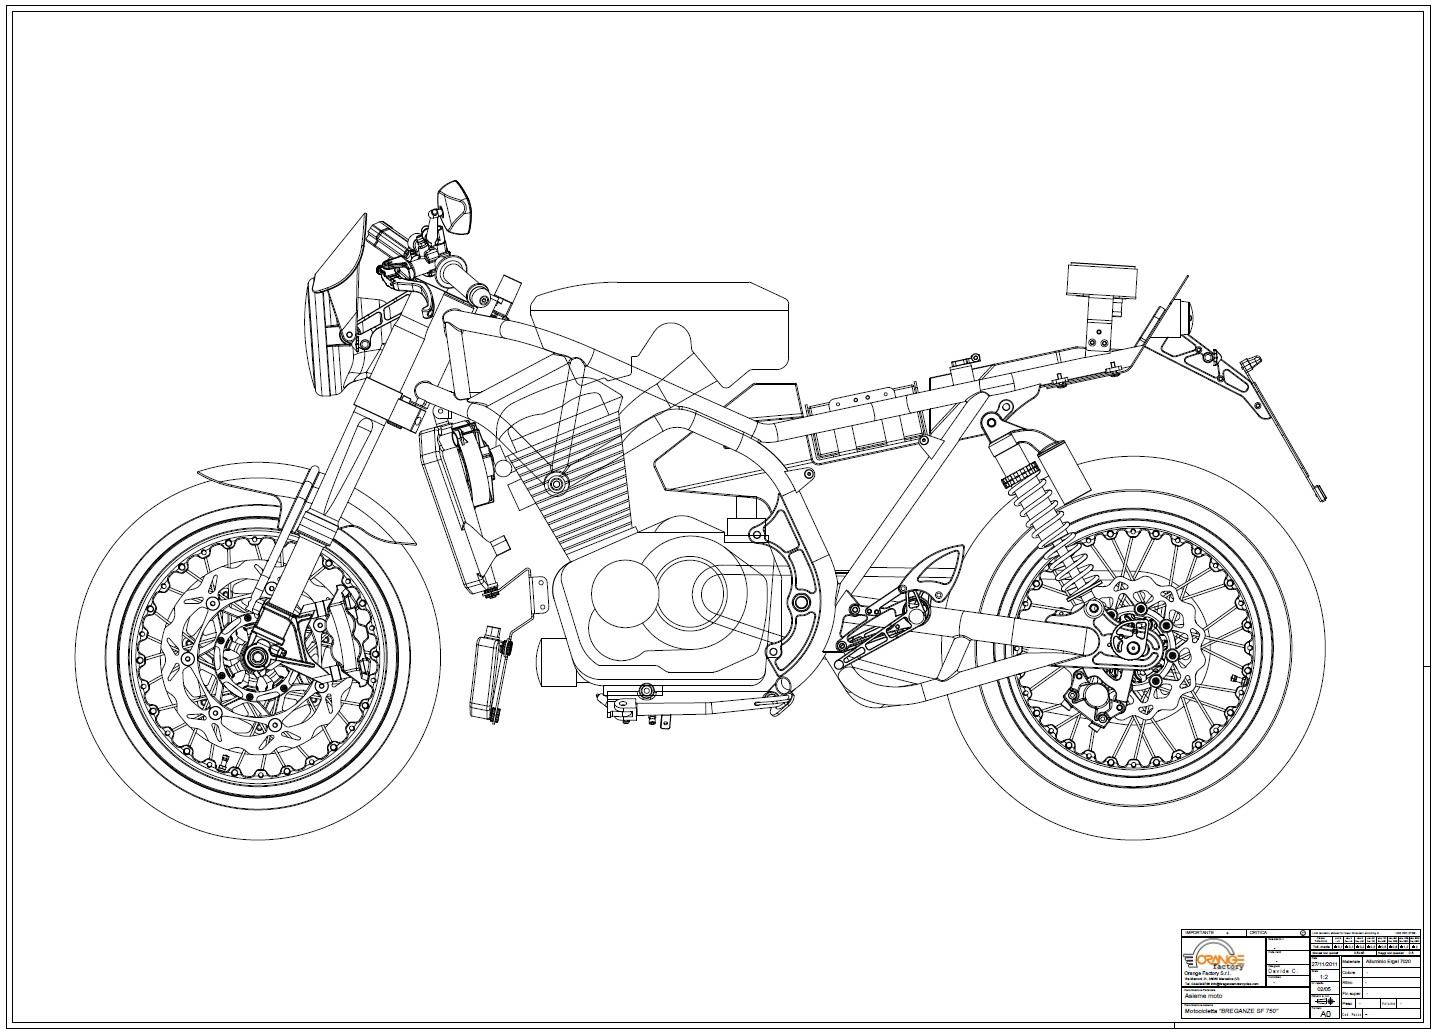 Racing Cafe Breganze Motorcycles Sf 750 Drawings